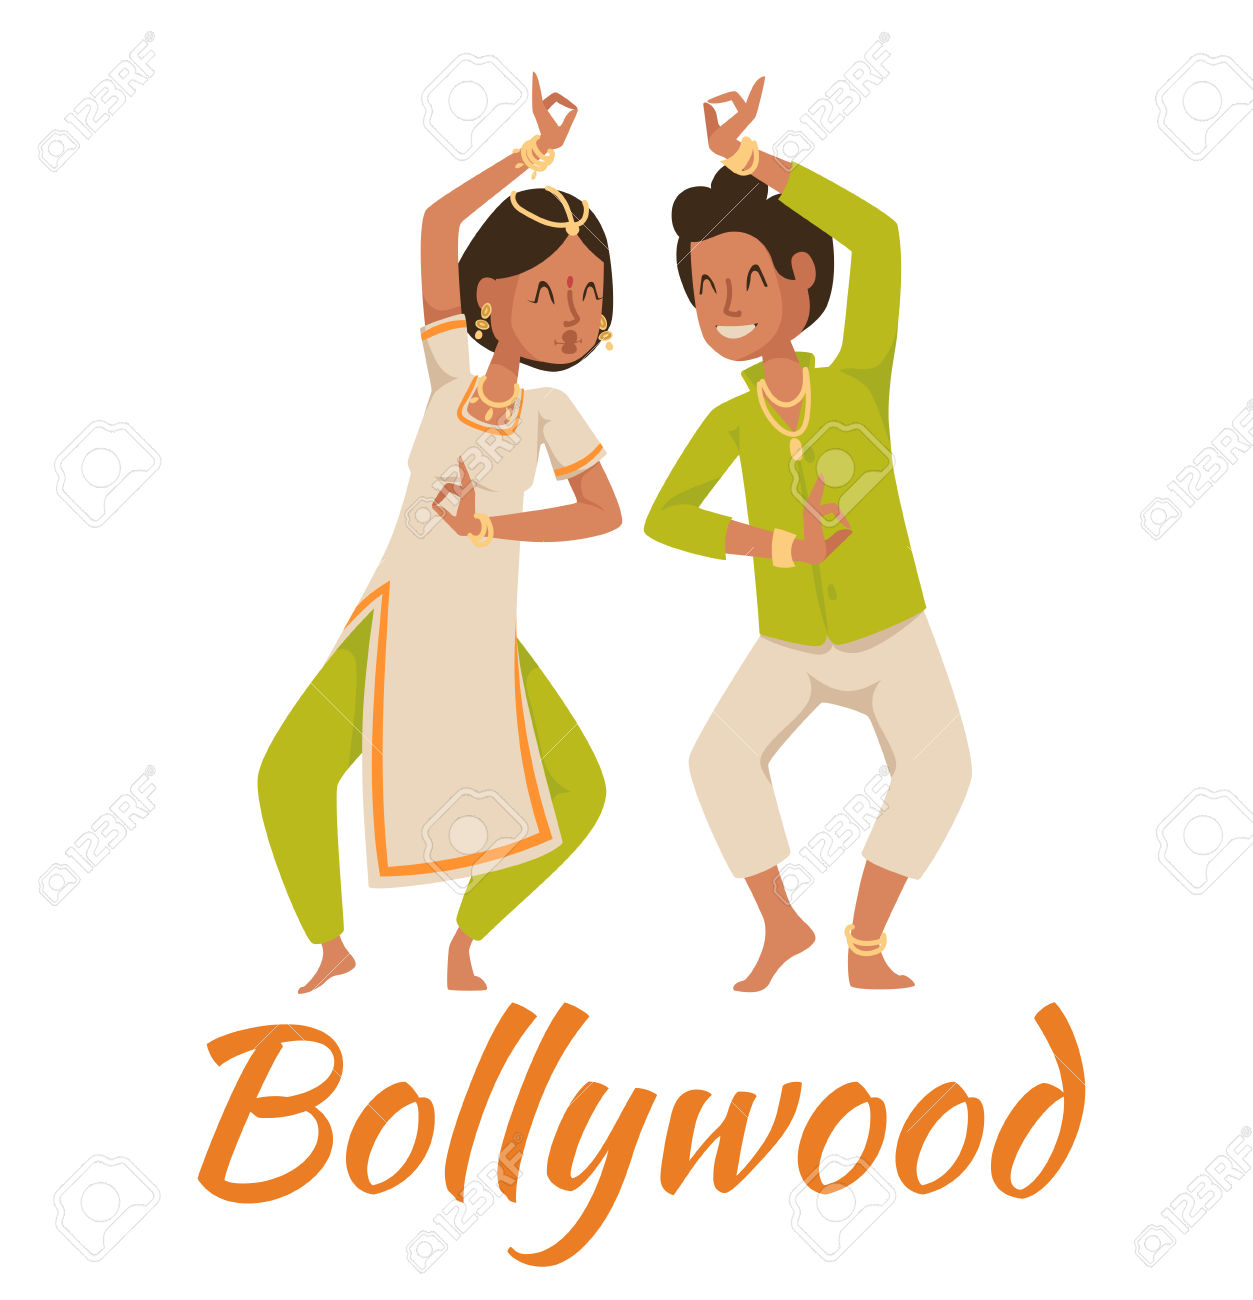 Movies clipart bollywood.